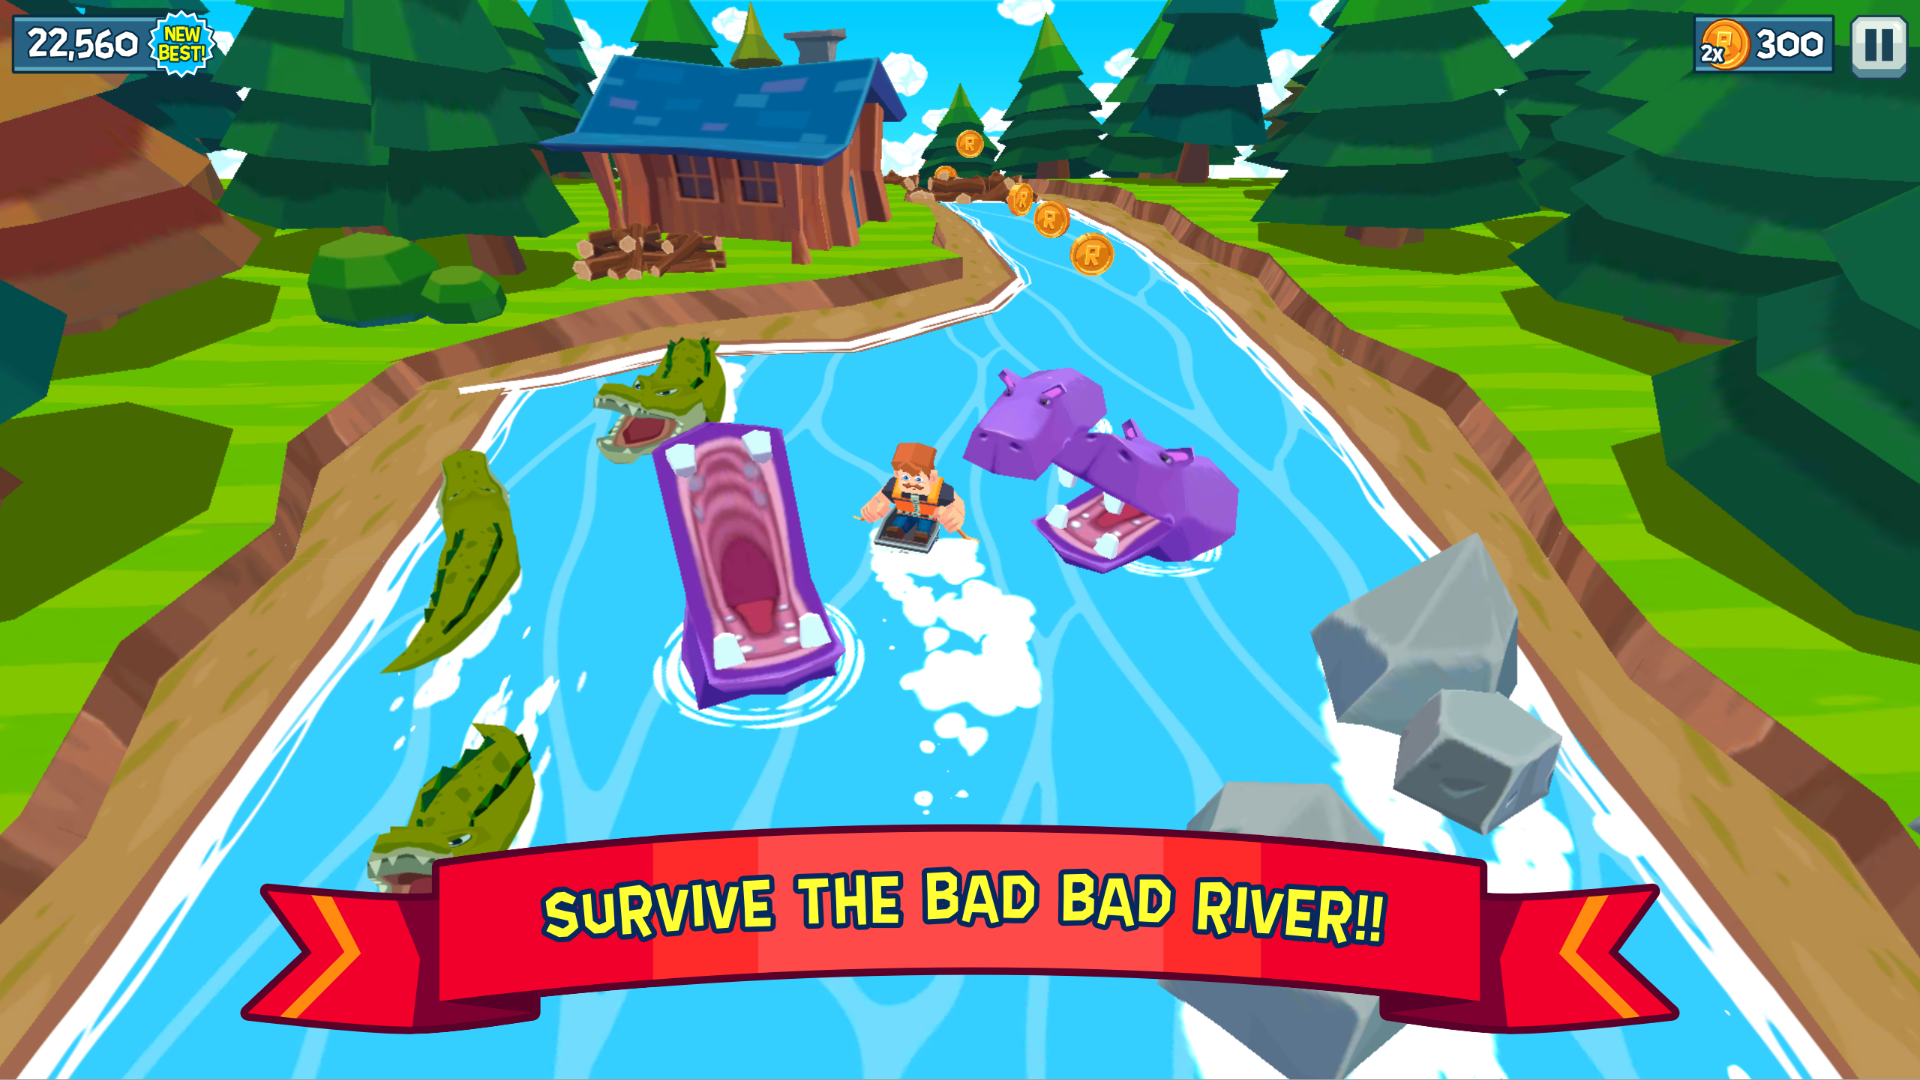 Rowan McPaddles - The Bad Bad River Rush